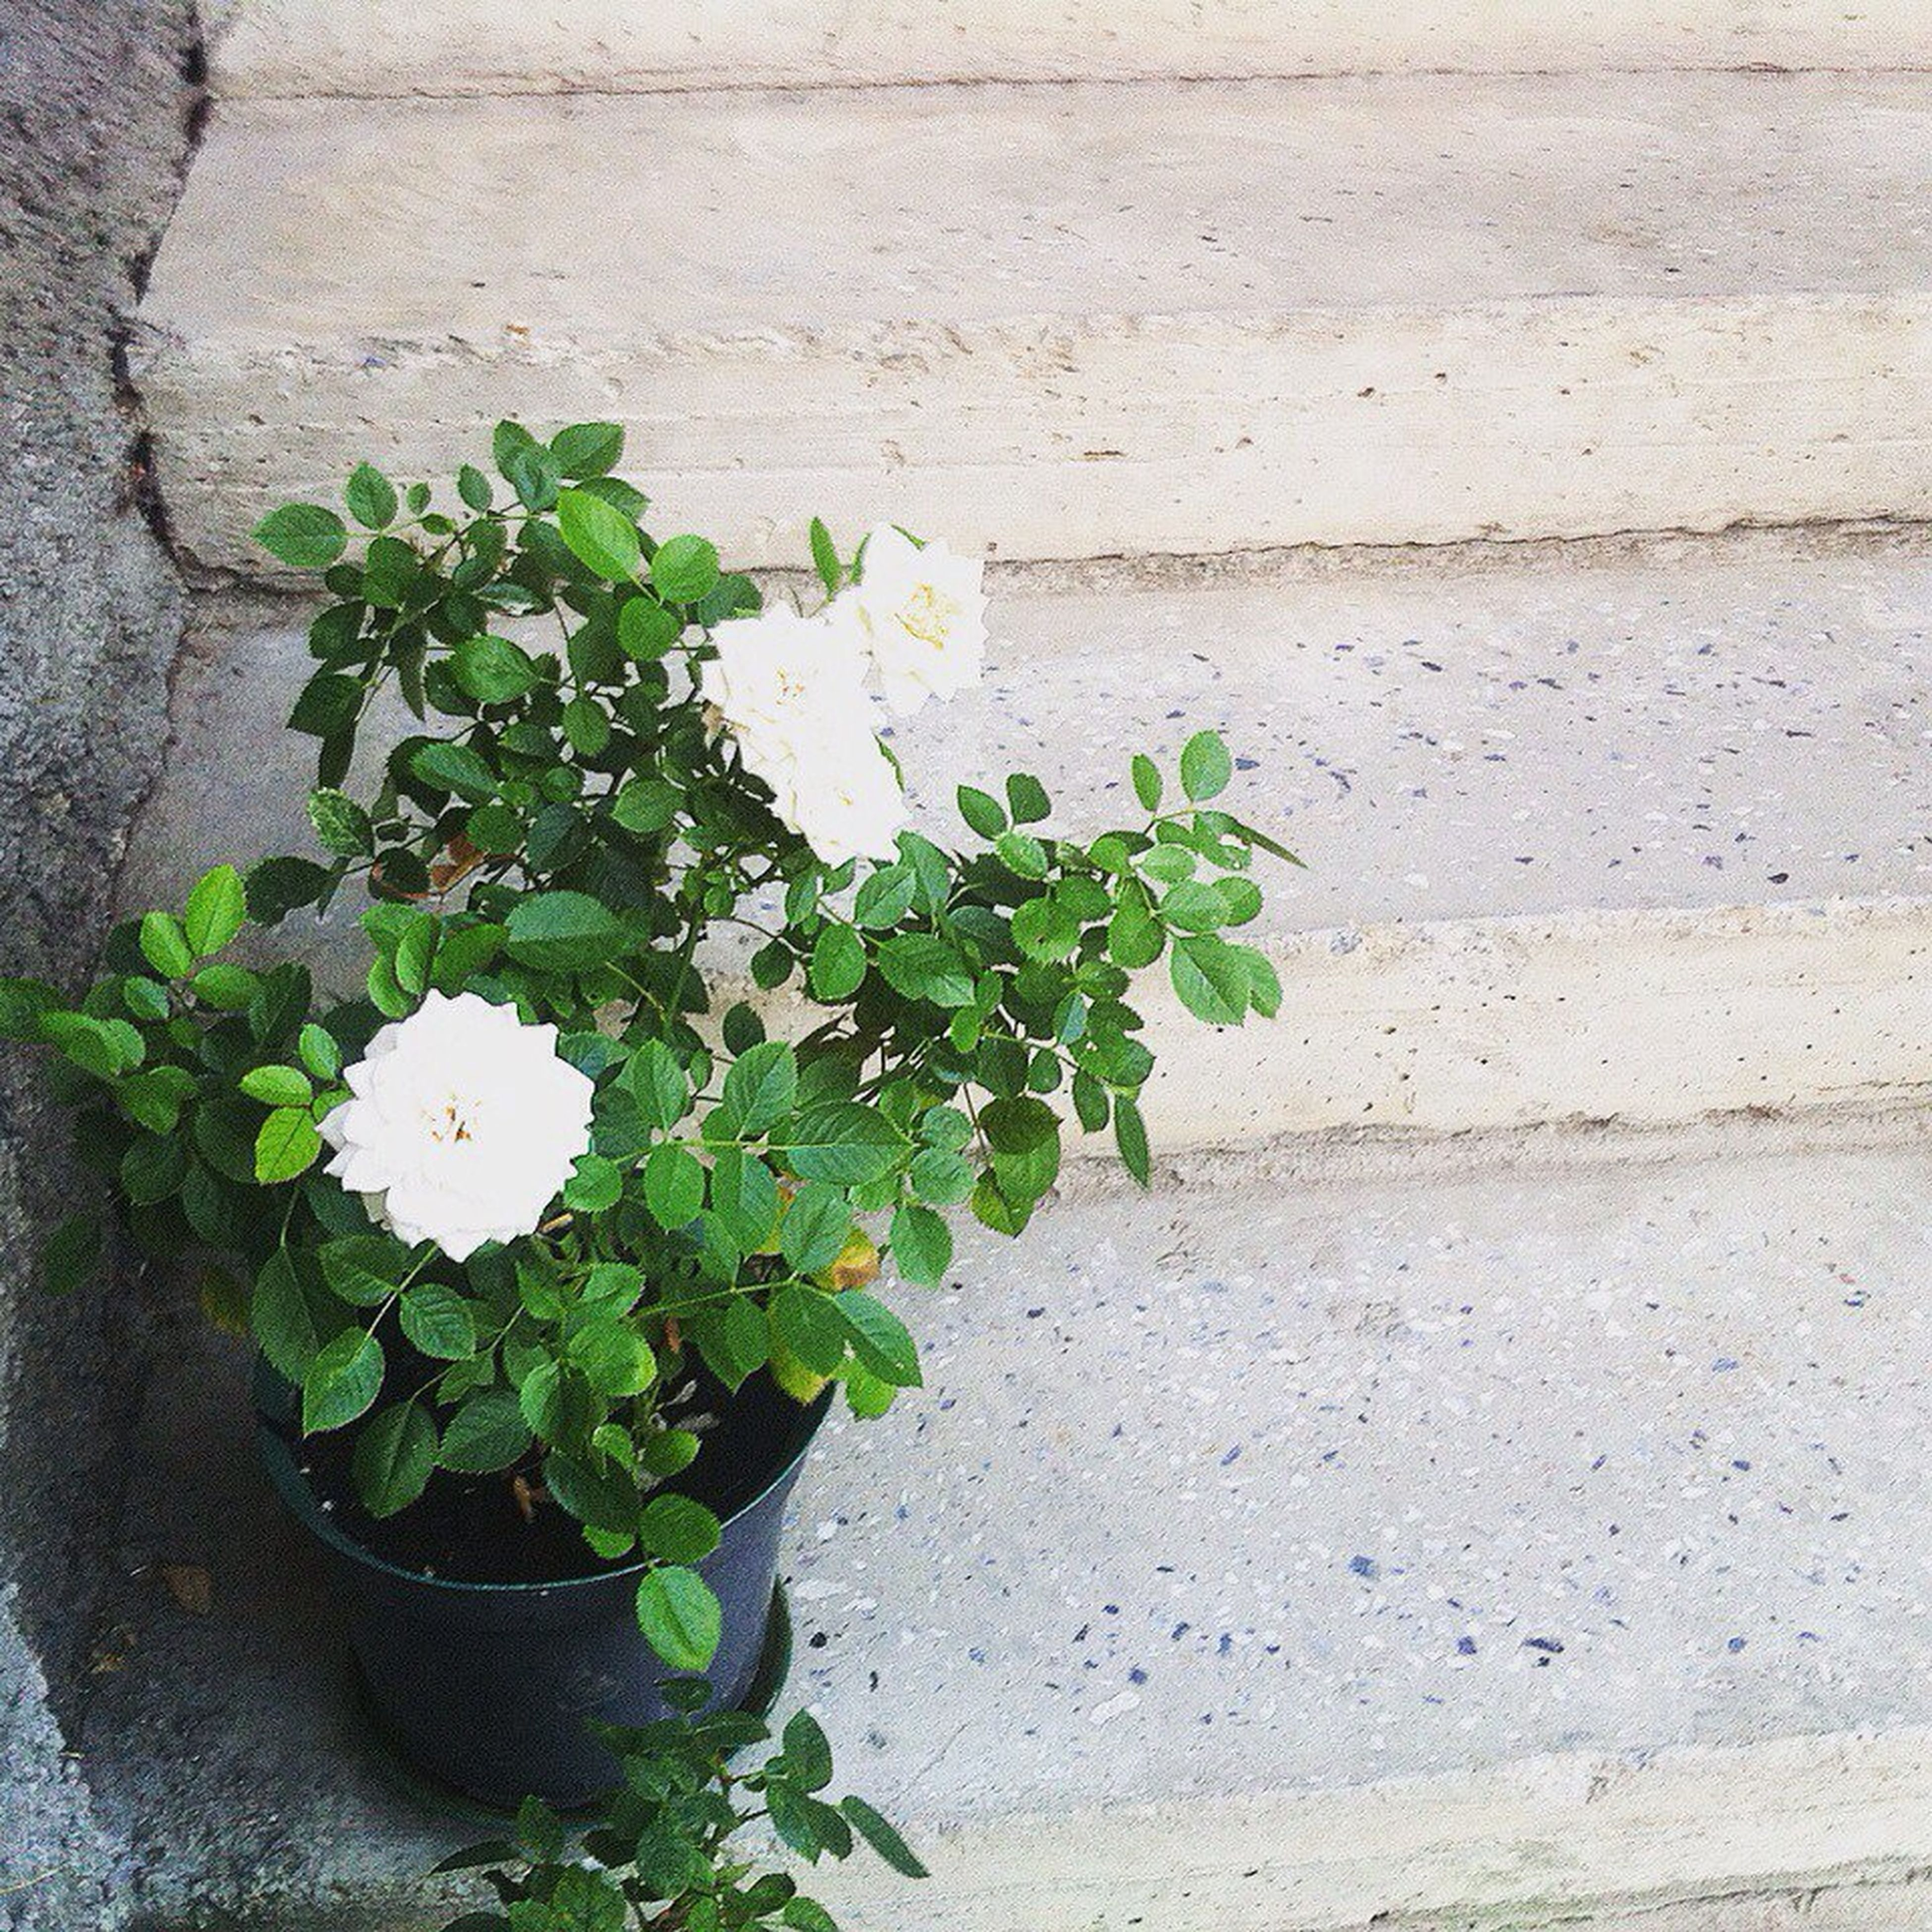 growth, flower, plant, leaf, freshness, fragility, nature, green color, white color, beauty in nature, petal, wall - building feature, growing, close-up, high angle view, flower head, blooming, in bloom, no people, potted plant